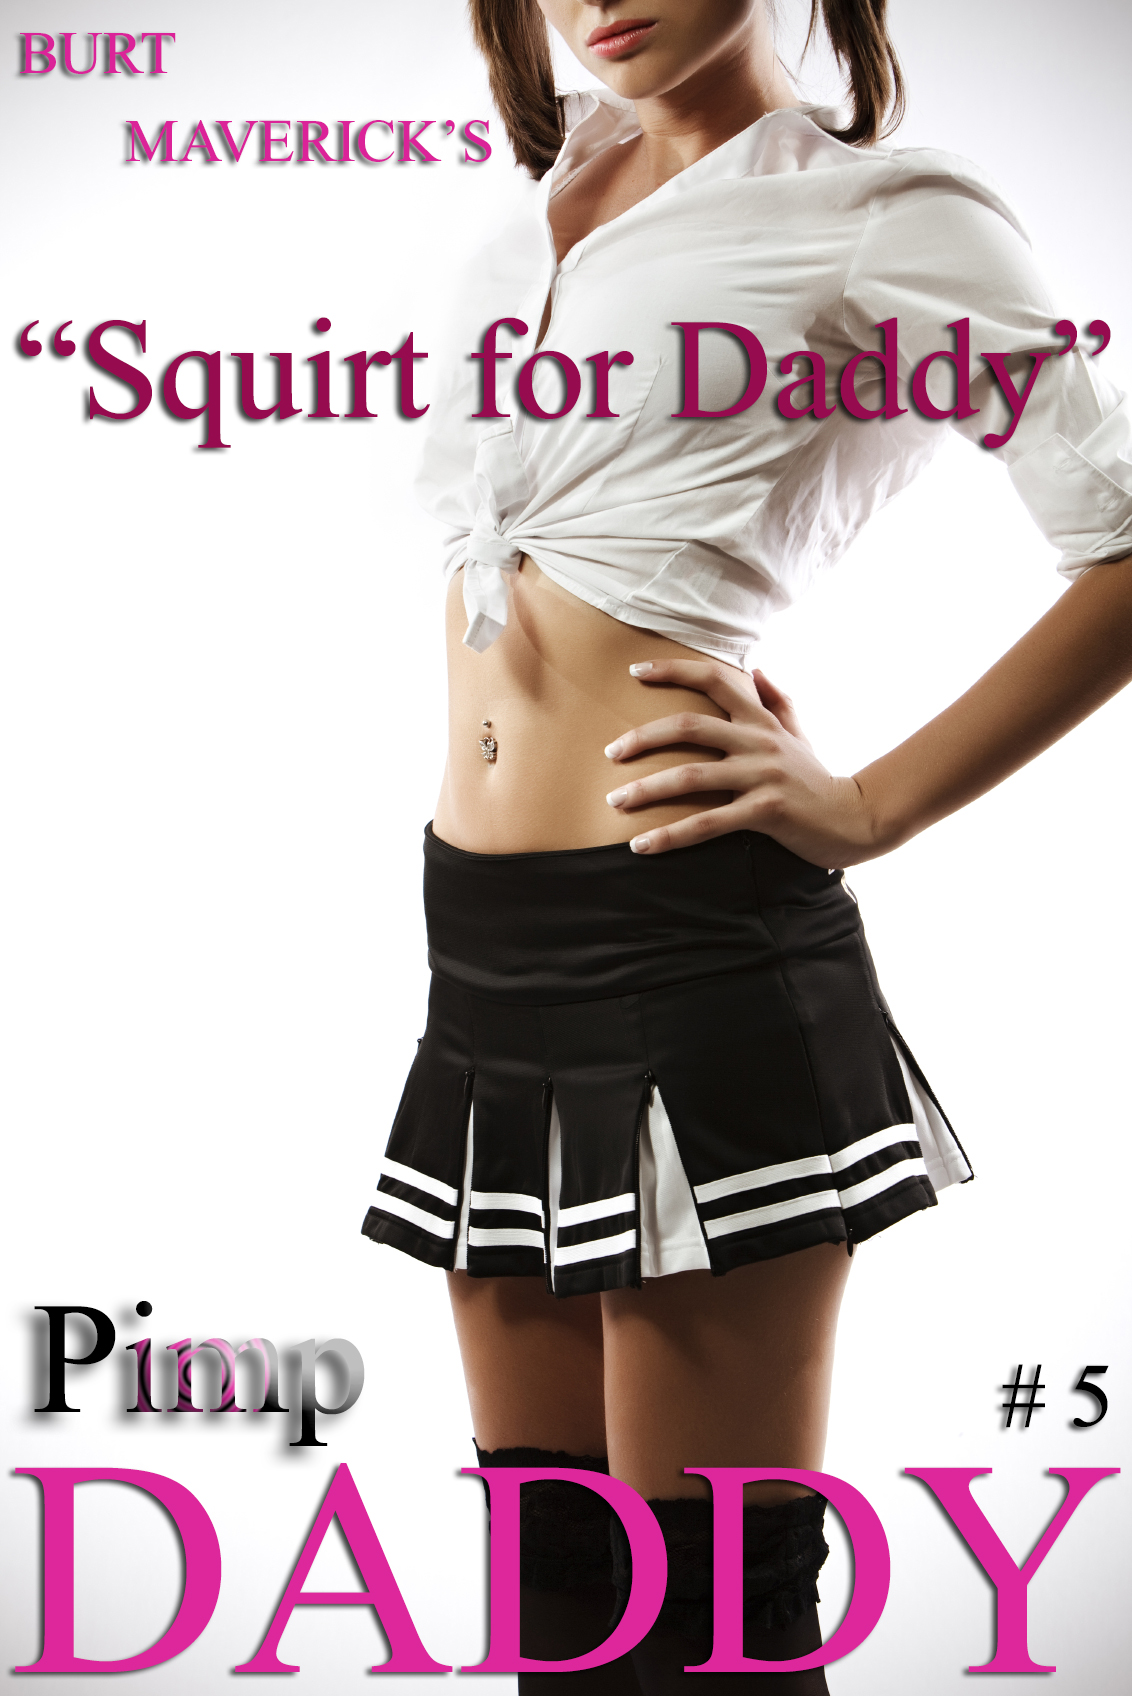 1- Pimp Daddy 5 Squirt for Daddy